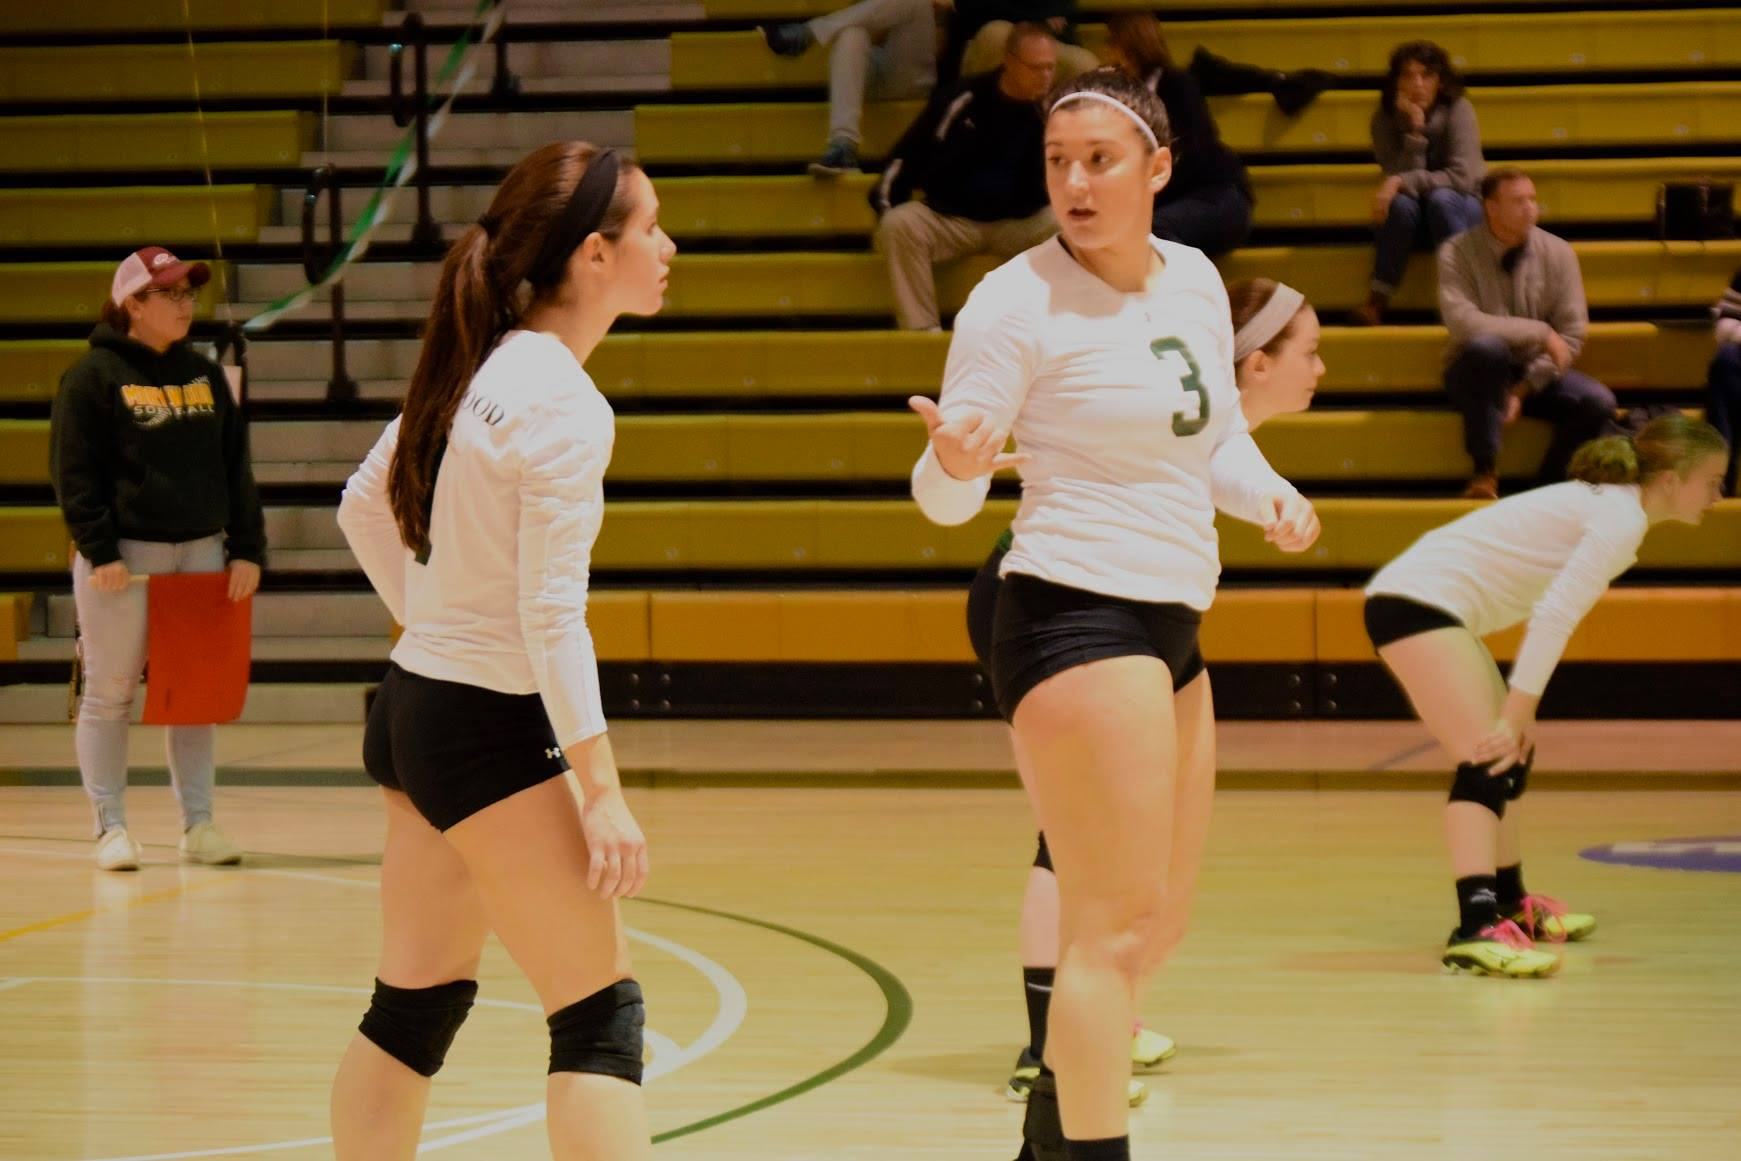 Sophomore Mallorie Deschaine talking strategy during the match